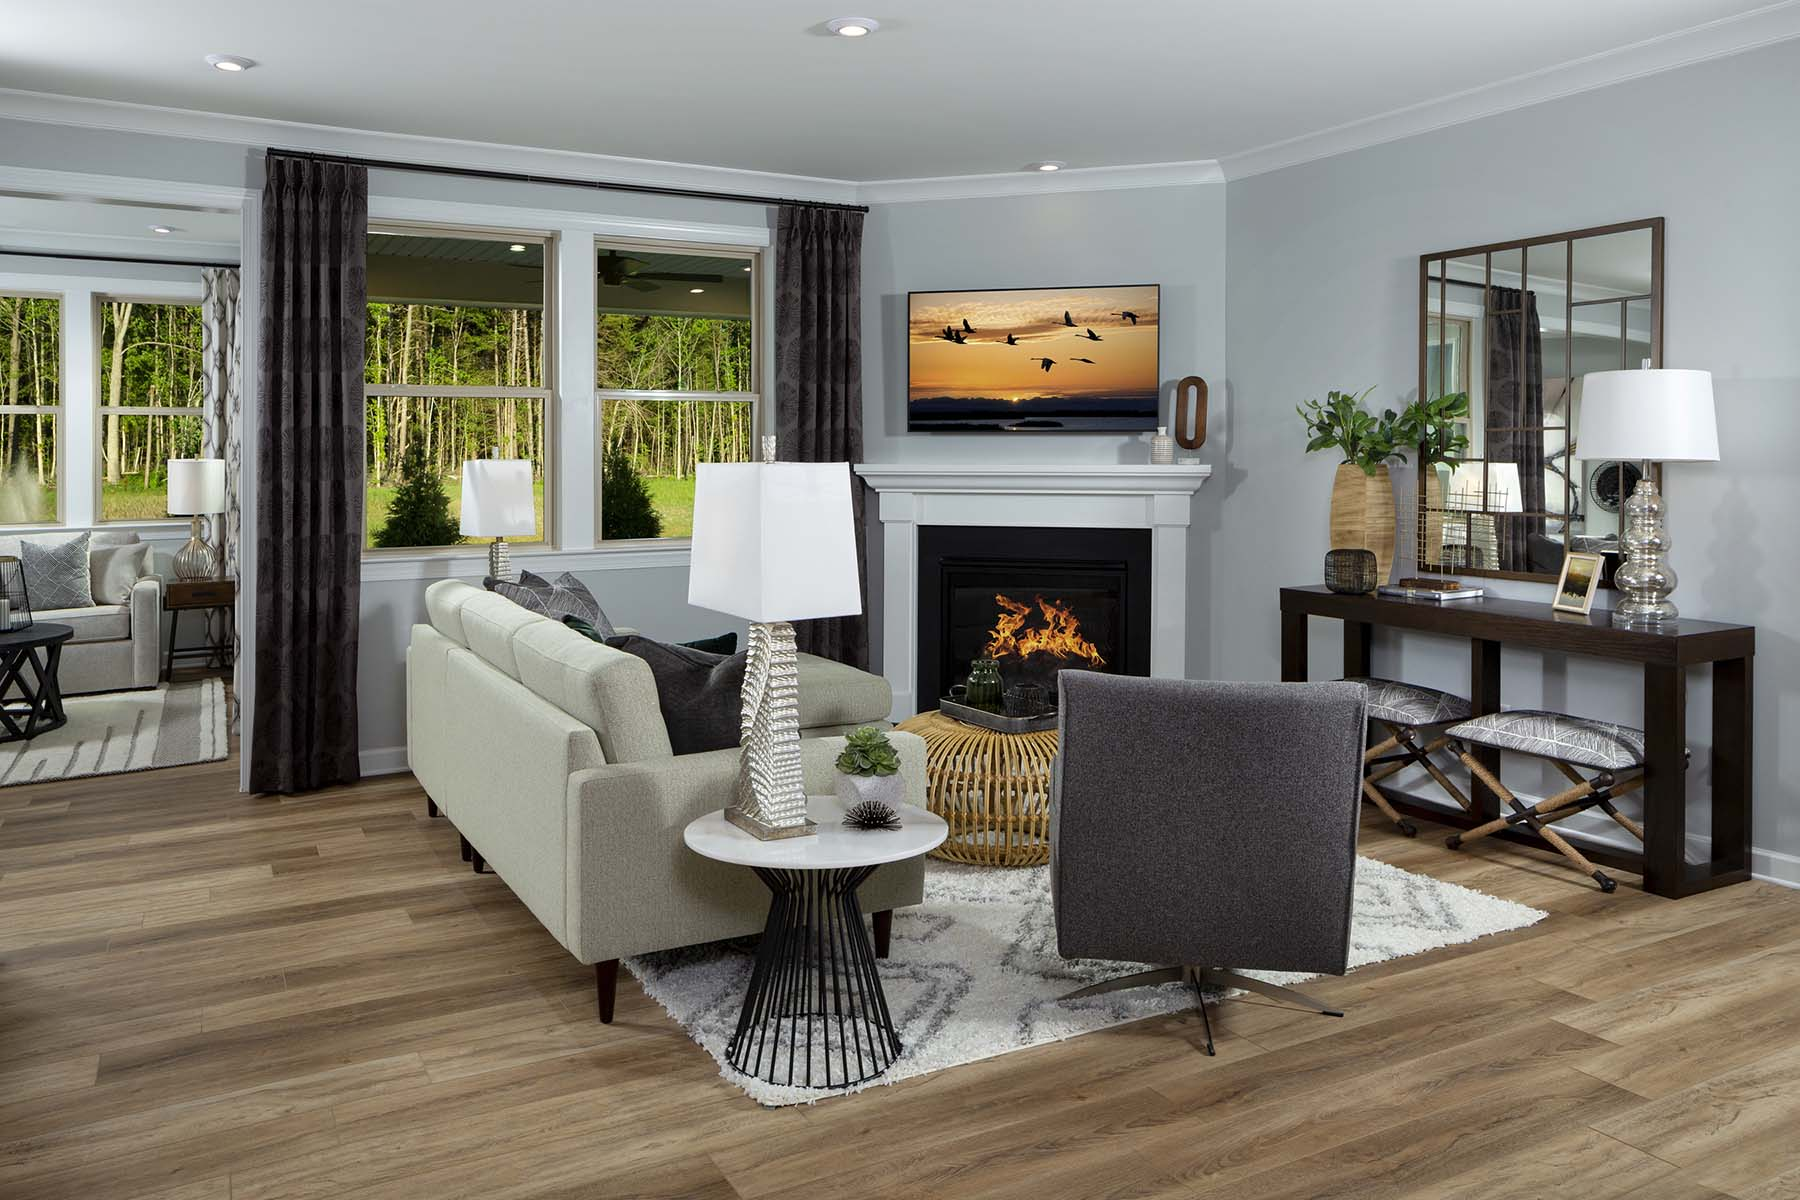 Presley Plan Greatroom at Sonata at Mint Hill in Mint Hill North Carolina by Mattamy Homes